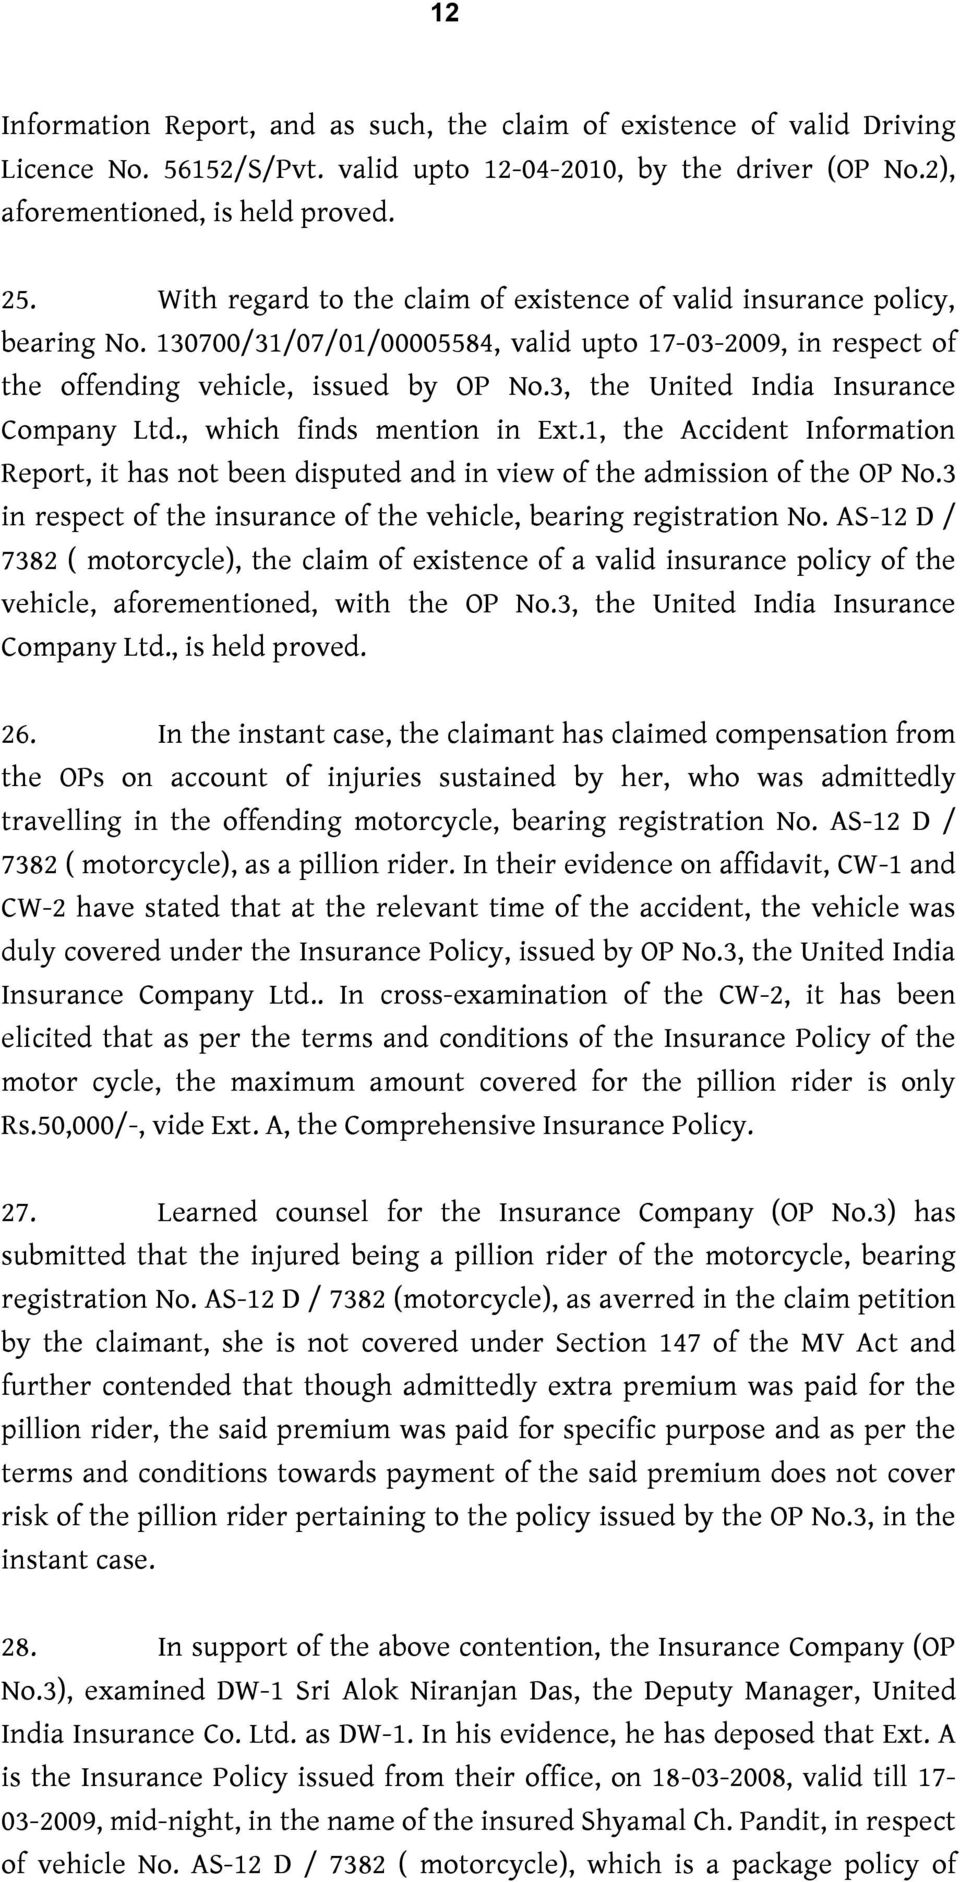 3, the United India Insurance Company Ltd., which finds mention in Ext.1, the Accident Information Report, it has not been disputed and in view of the admission of the OP No.